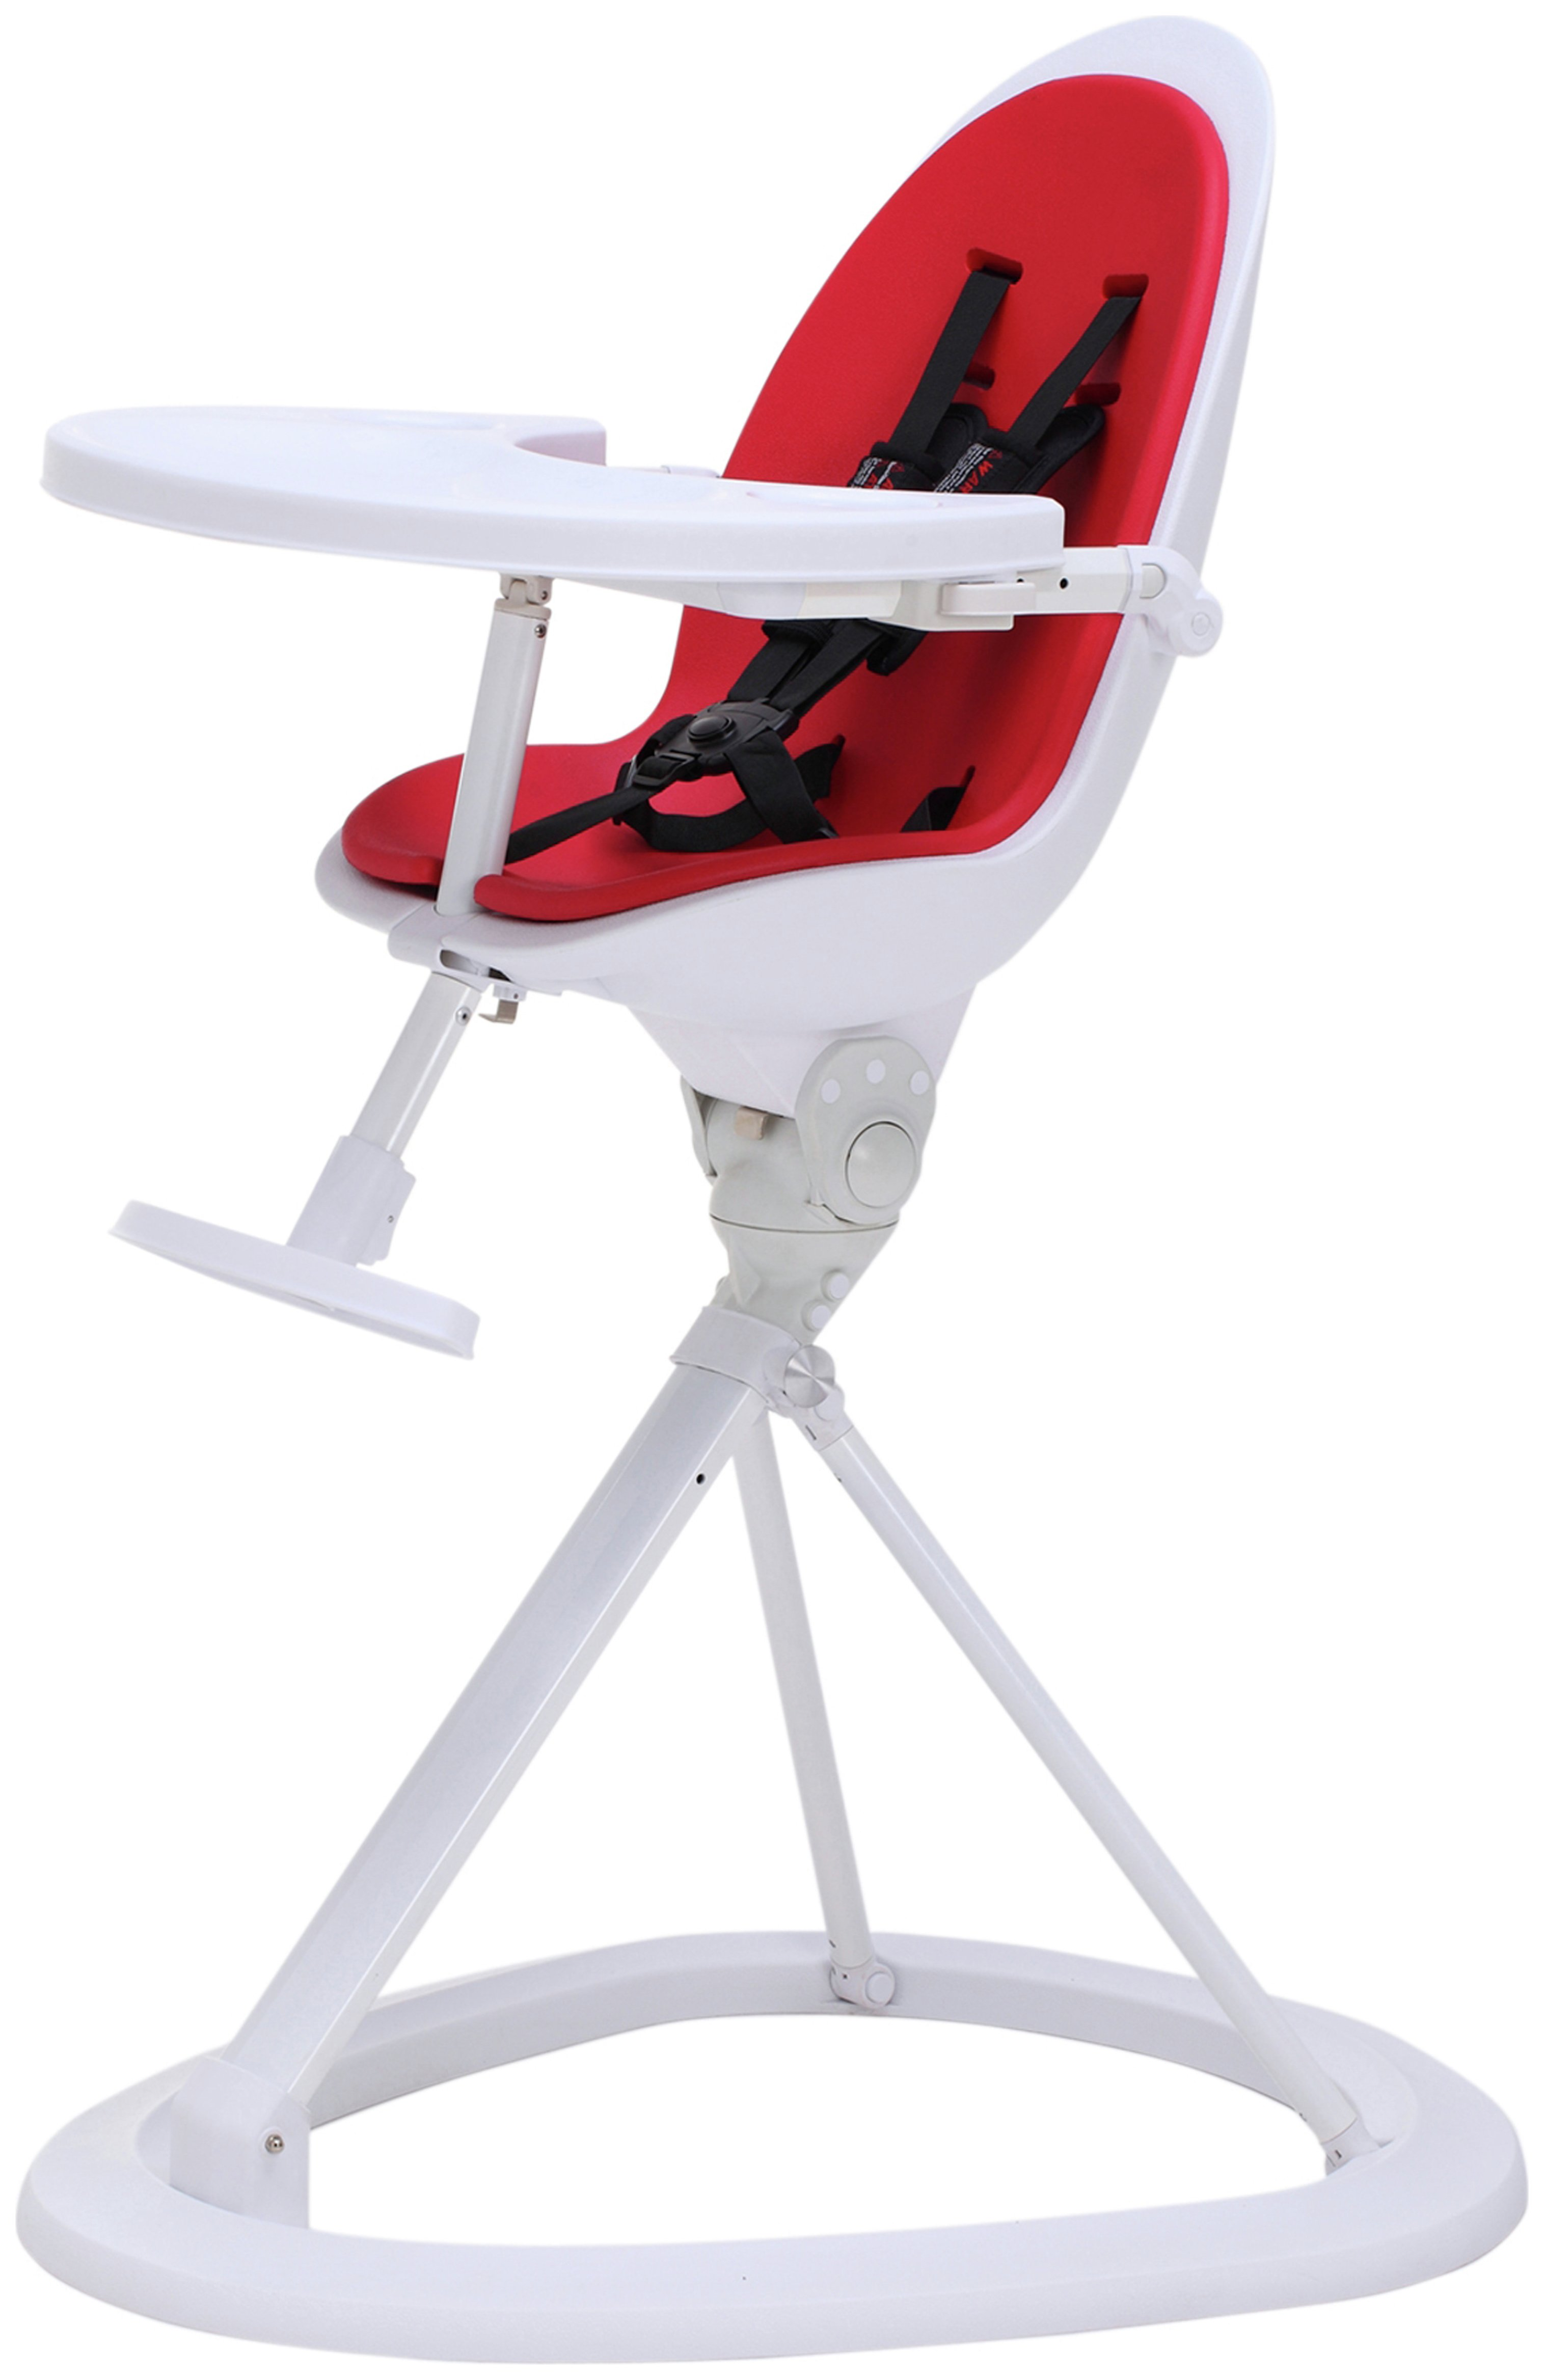 Compare retail prices of Ickle Bubba Red on White Highchair. to get the best deal online